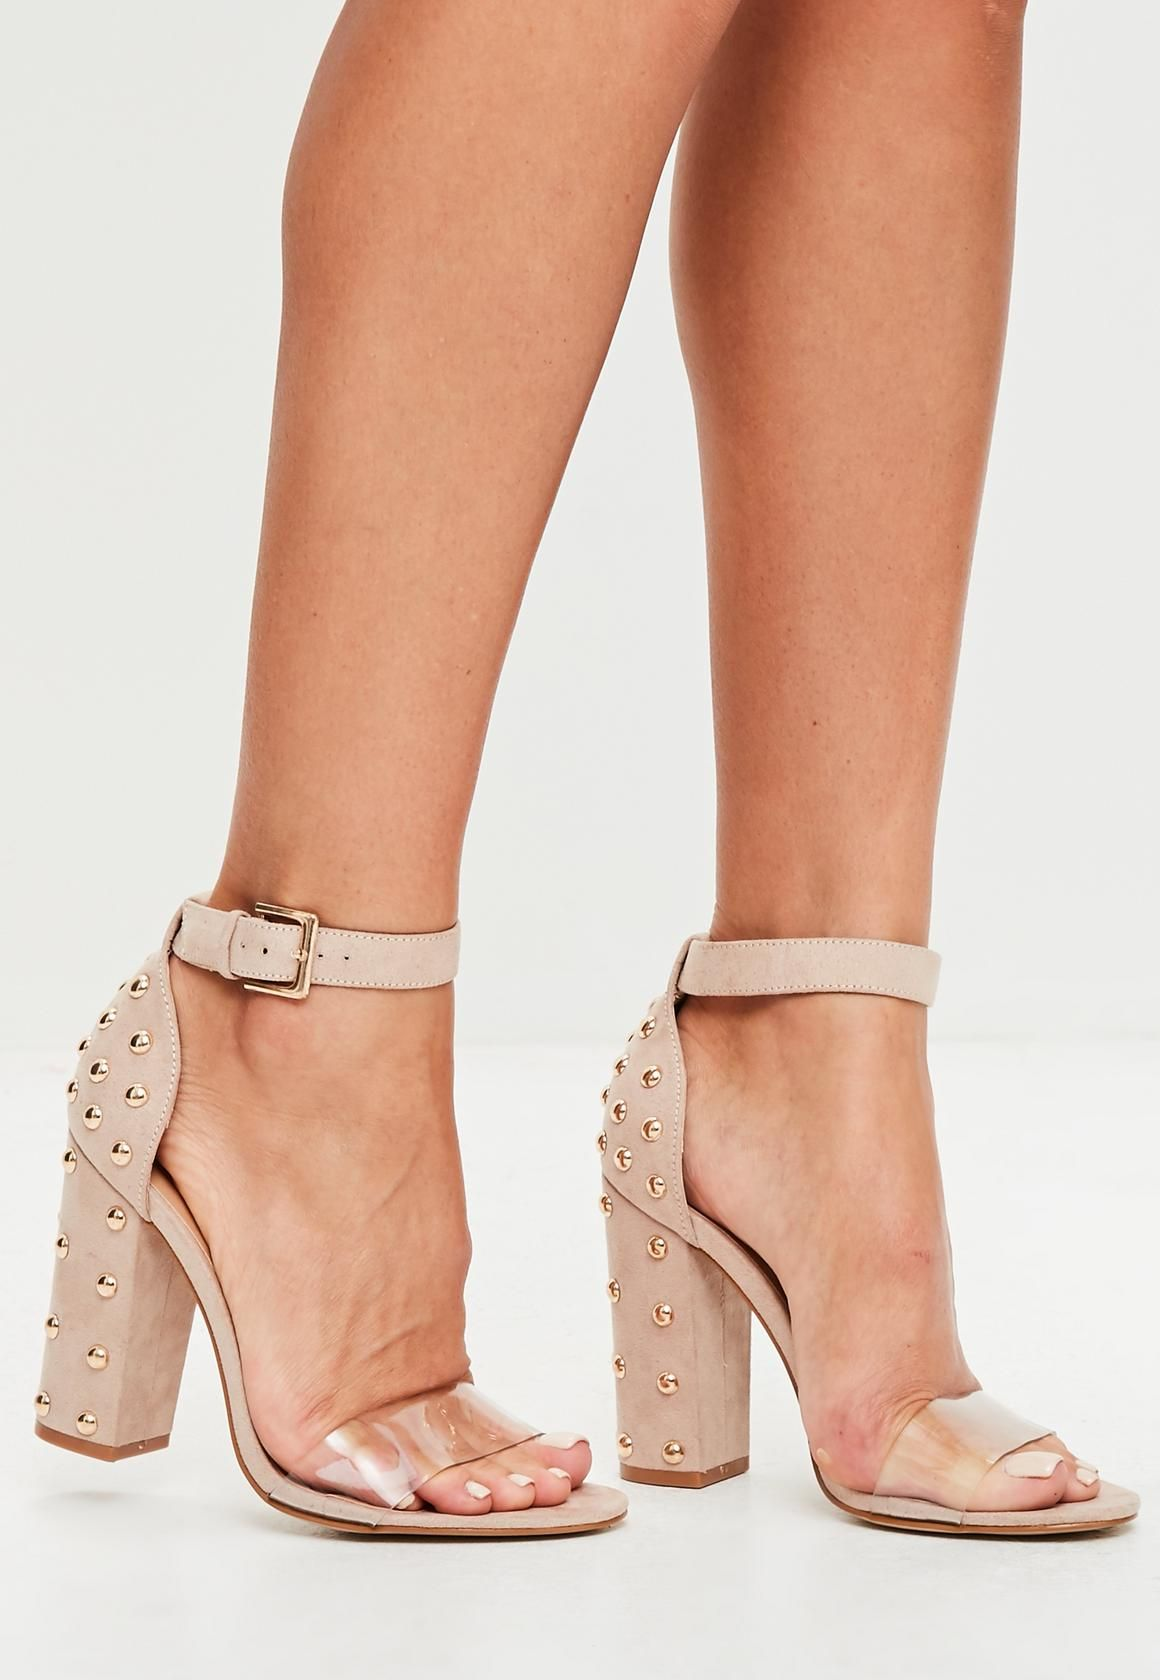 1583a4e69e Missguided - Nude Dome Studded Block Heel Sandals | High flats ...